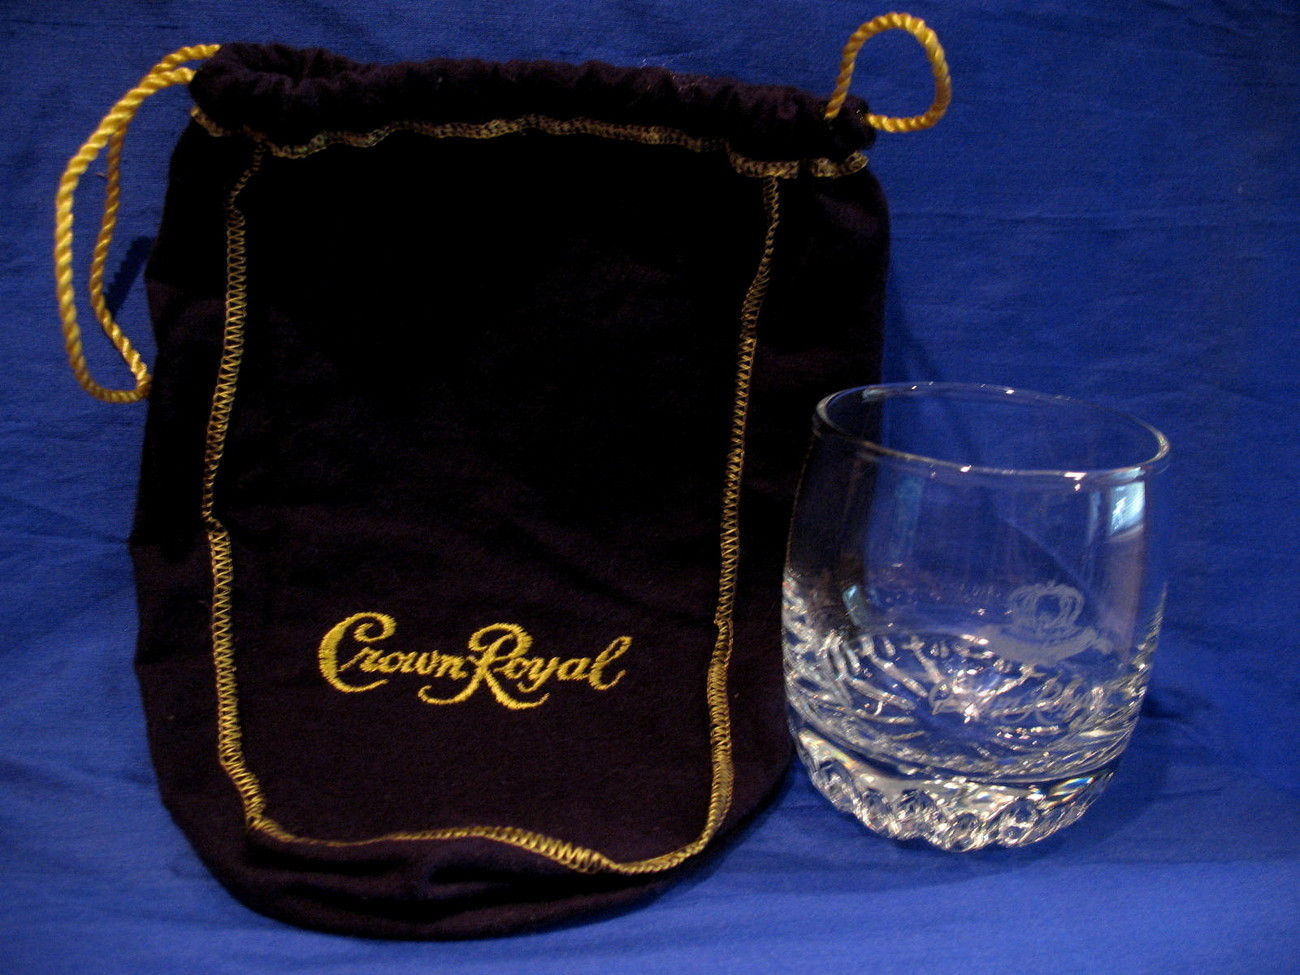 Primary image for Crown Royal Whisky Glass with Purple Gift Bag Round Tumbler Canadian Souvenir